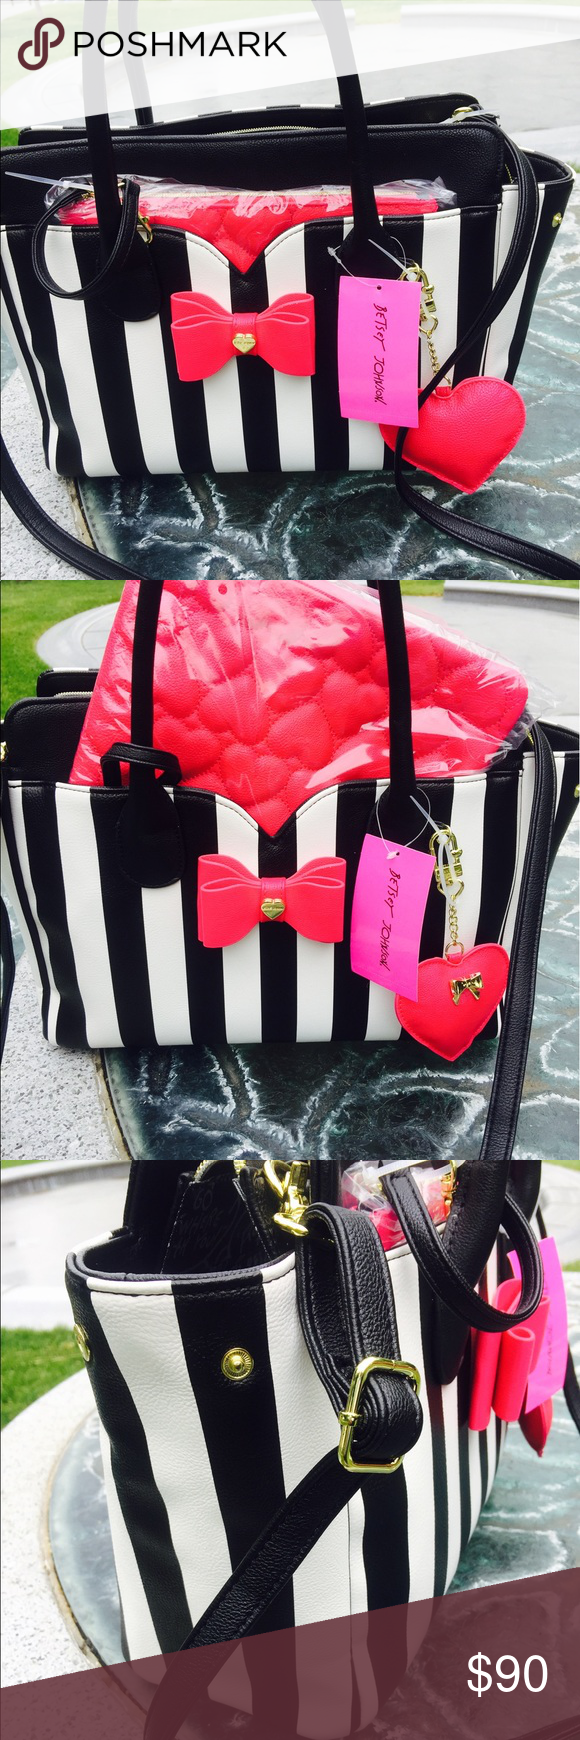 Betsey Johnson satchel bag Betsey Johnson black and white stripes satchel bag with a fuchsia pouch . Has a little discoloration on the bow tie . Betsey Johnson Bags Satchels